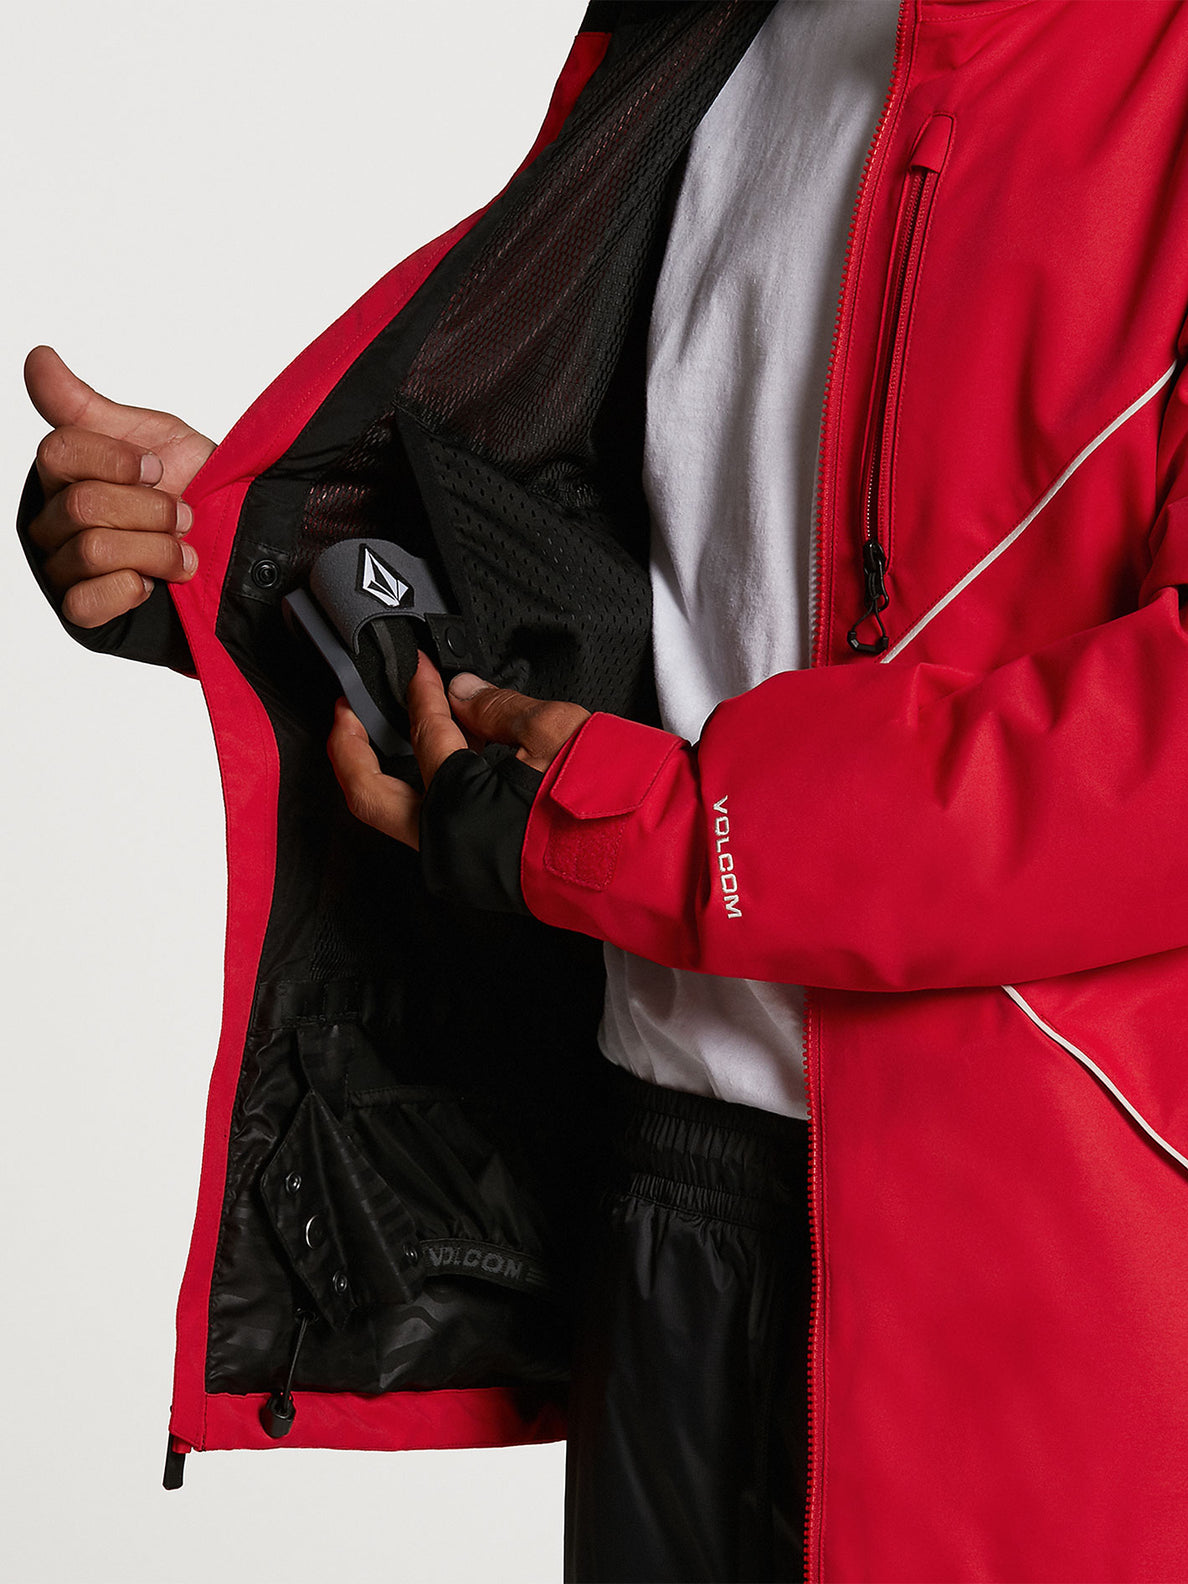 NO HOOD X JACKET - RED (G0652114_RED) [08]